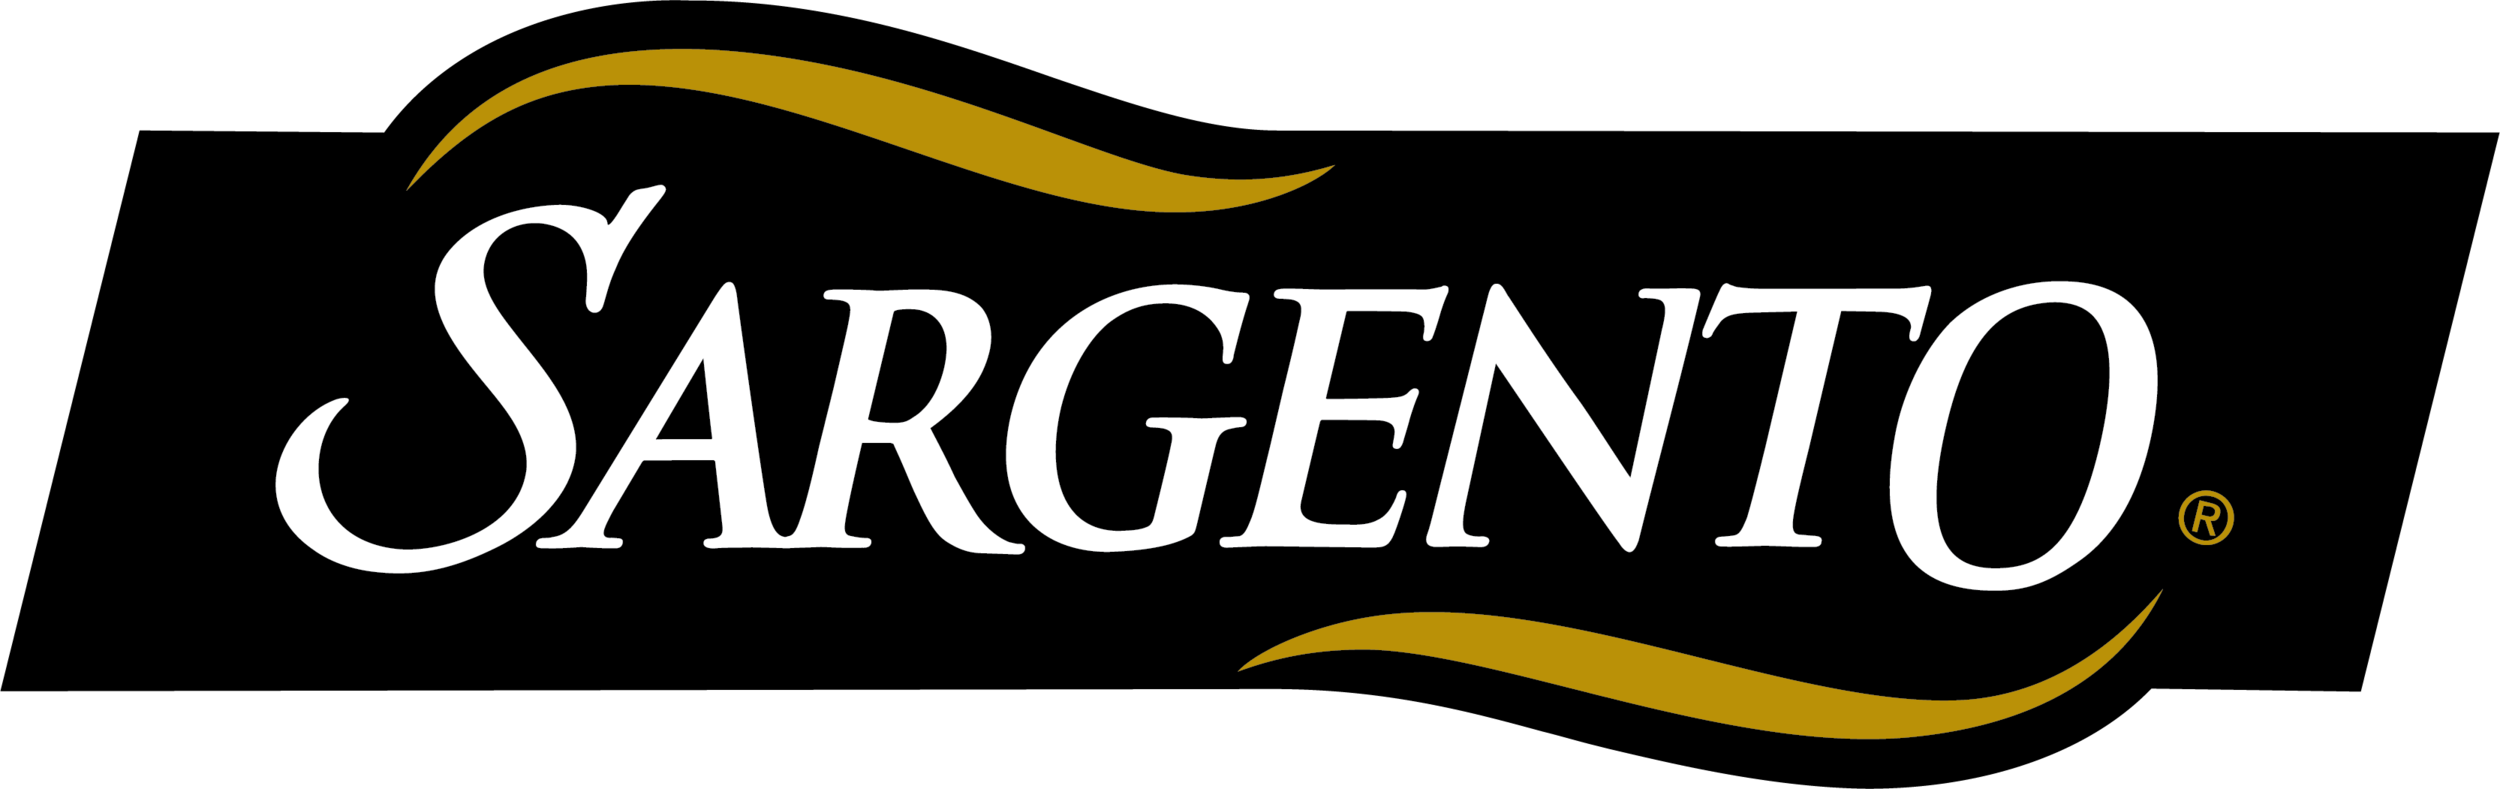 Sargento.png